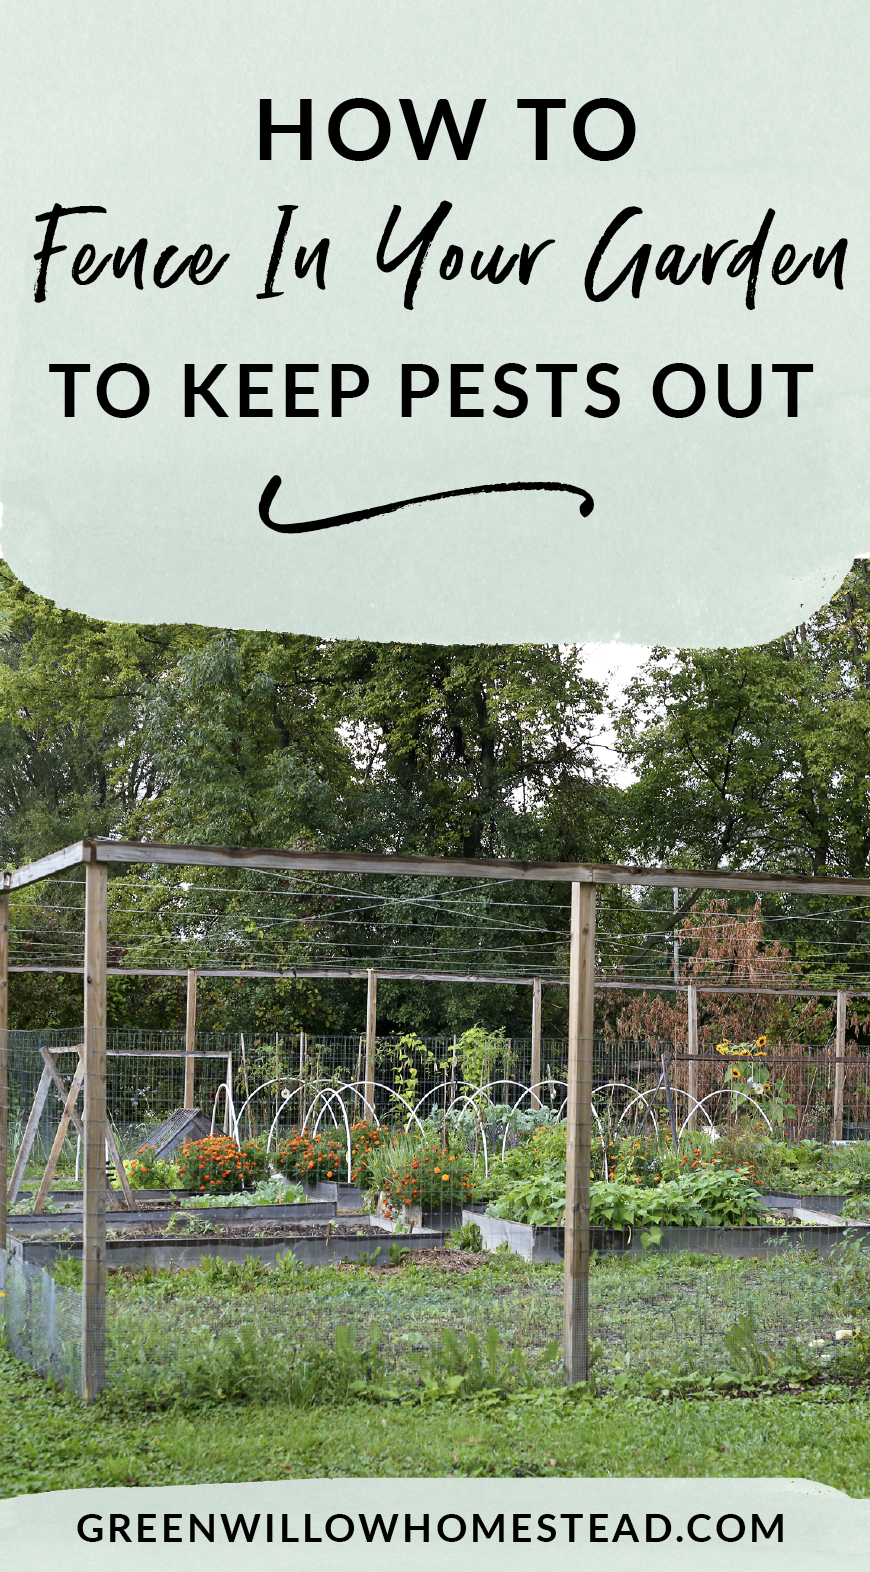 How to fence in your vegetable garden to keep pests out